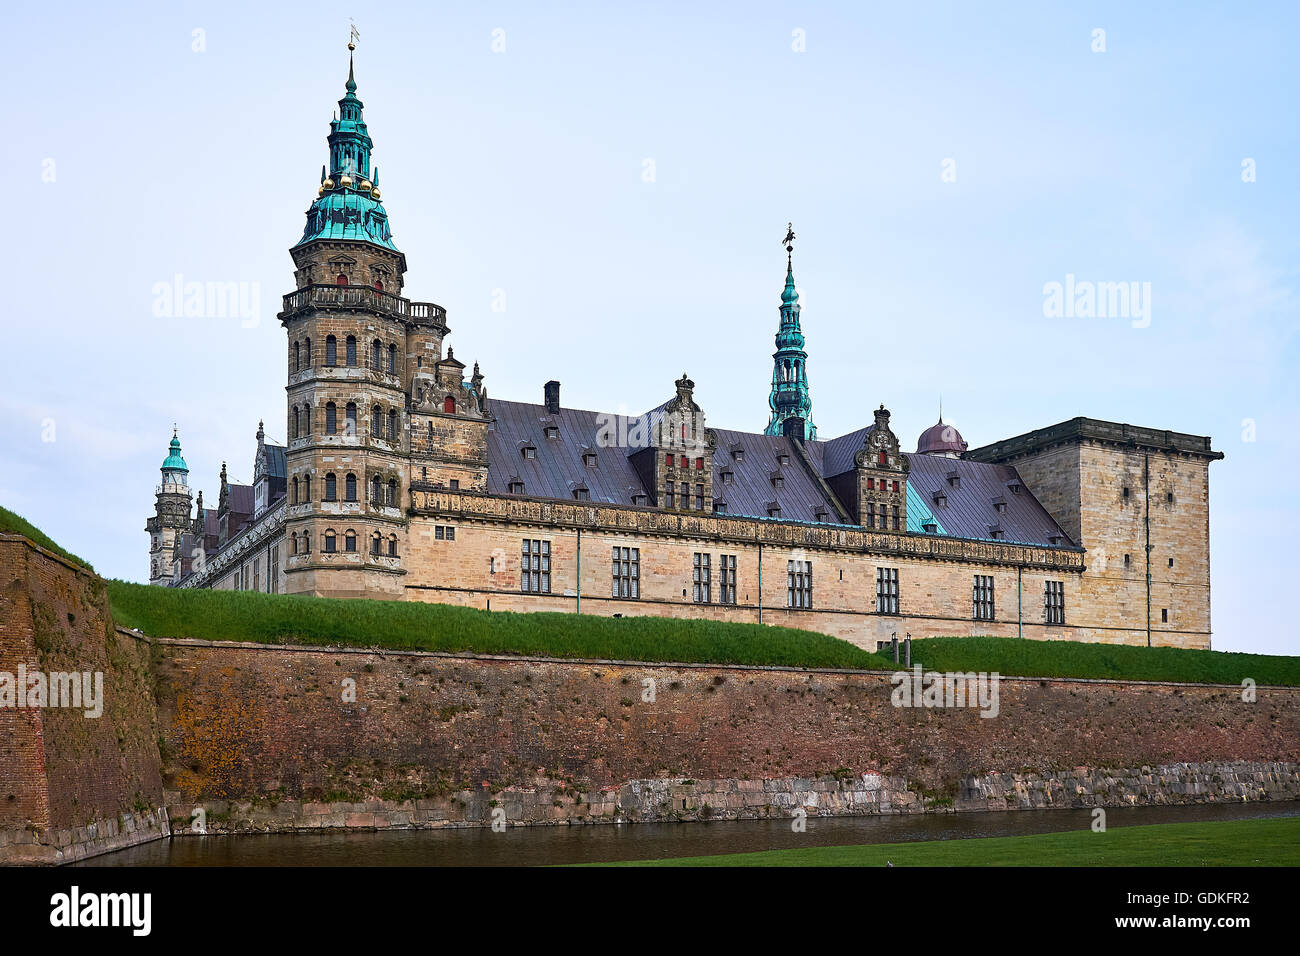 Elsinore castle the danish renaissance with green cobber spires and curlicues details, rising above the moat - Stock Image